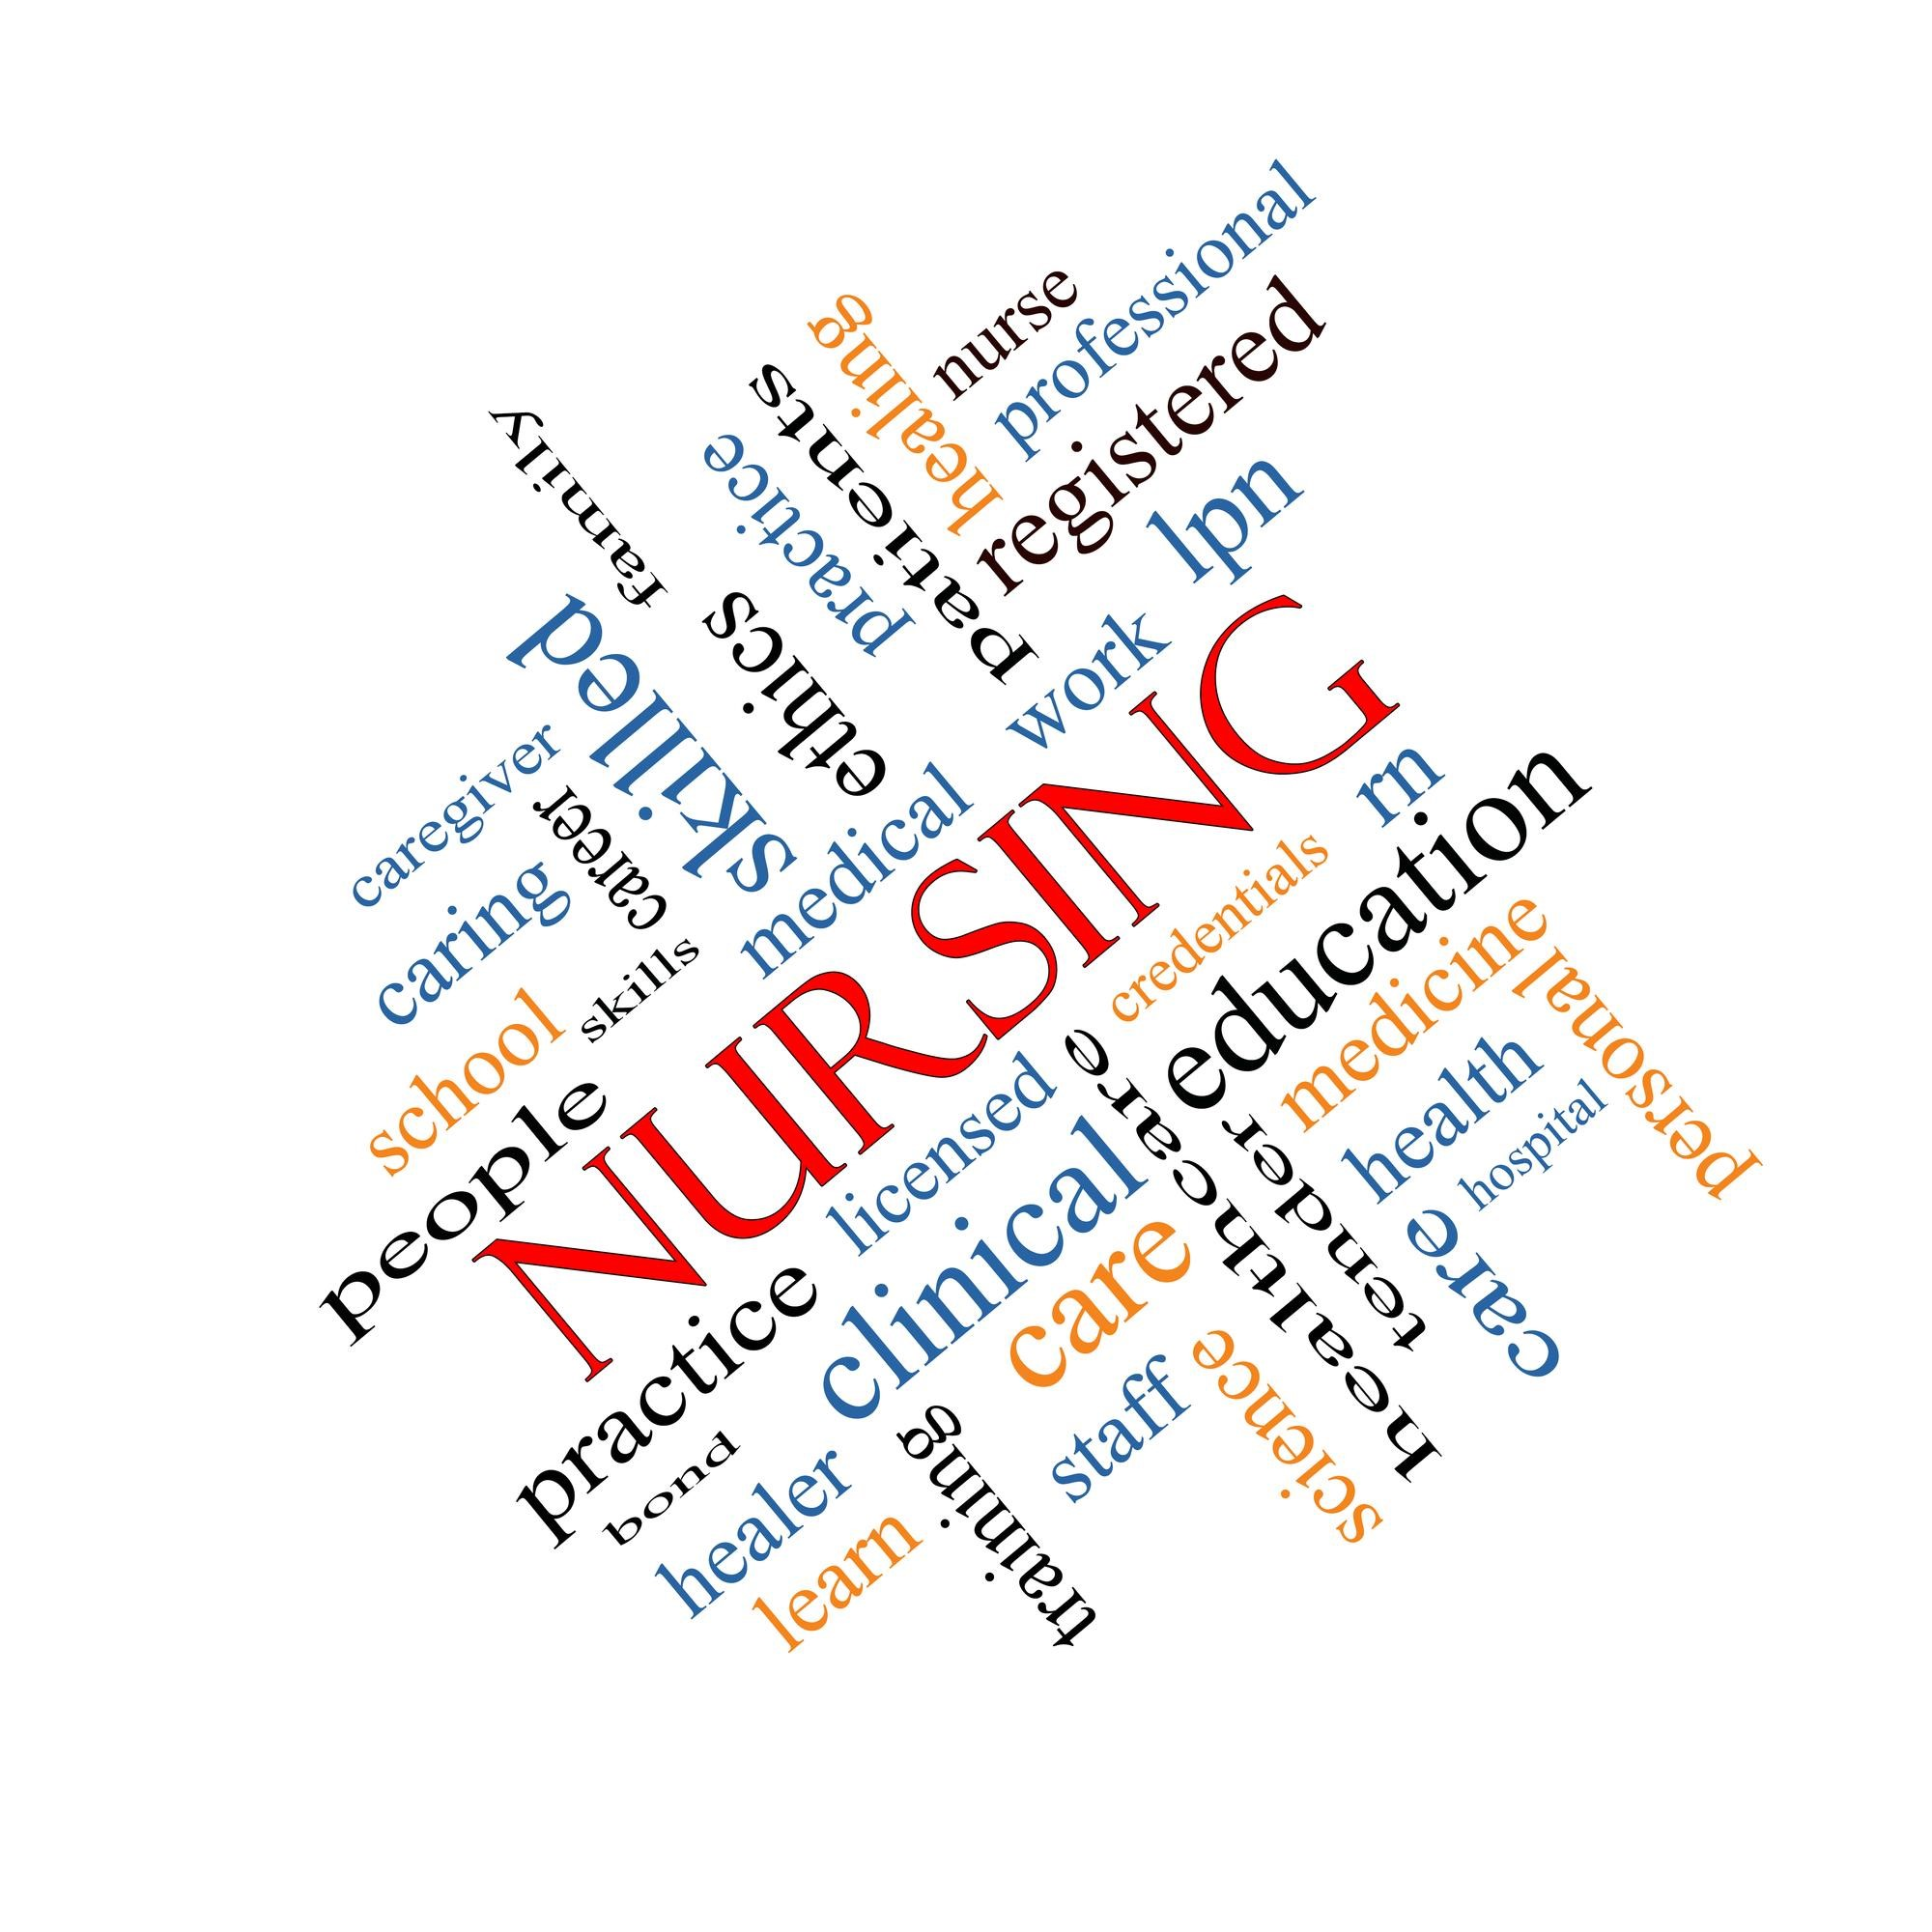 Importance of Ethics and Law in Nursing